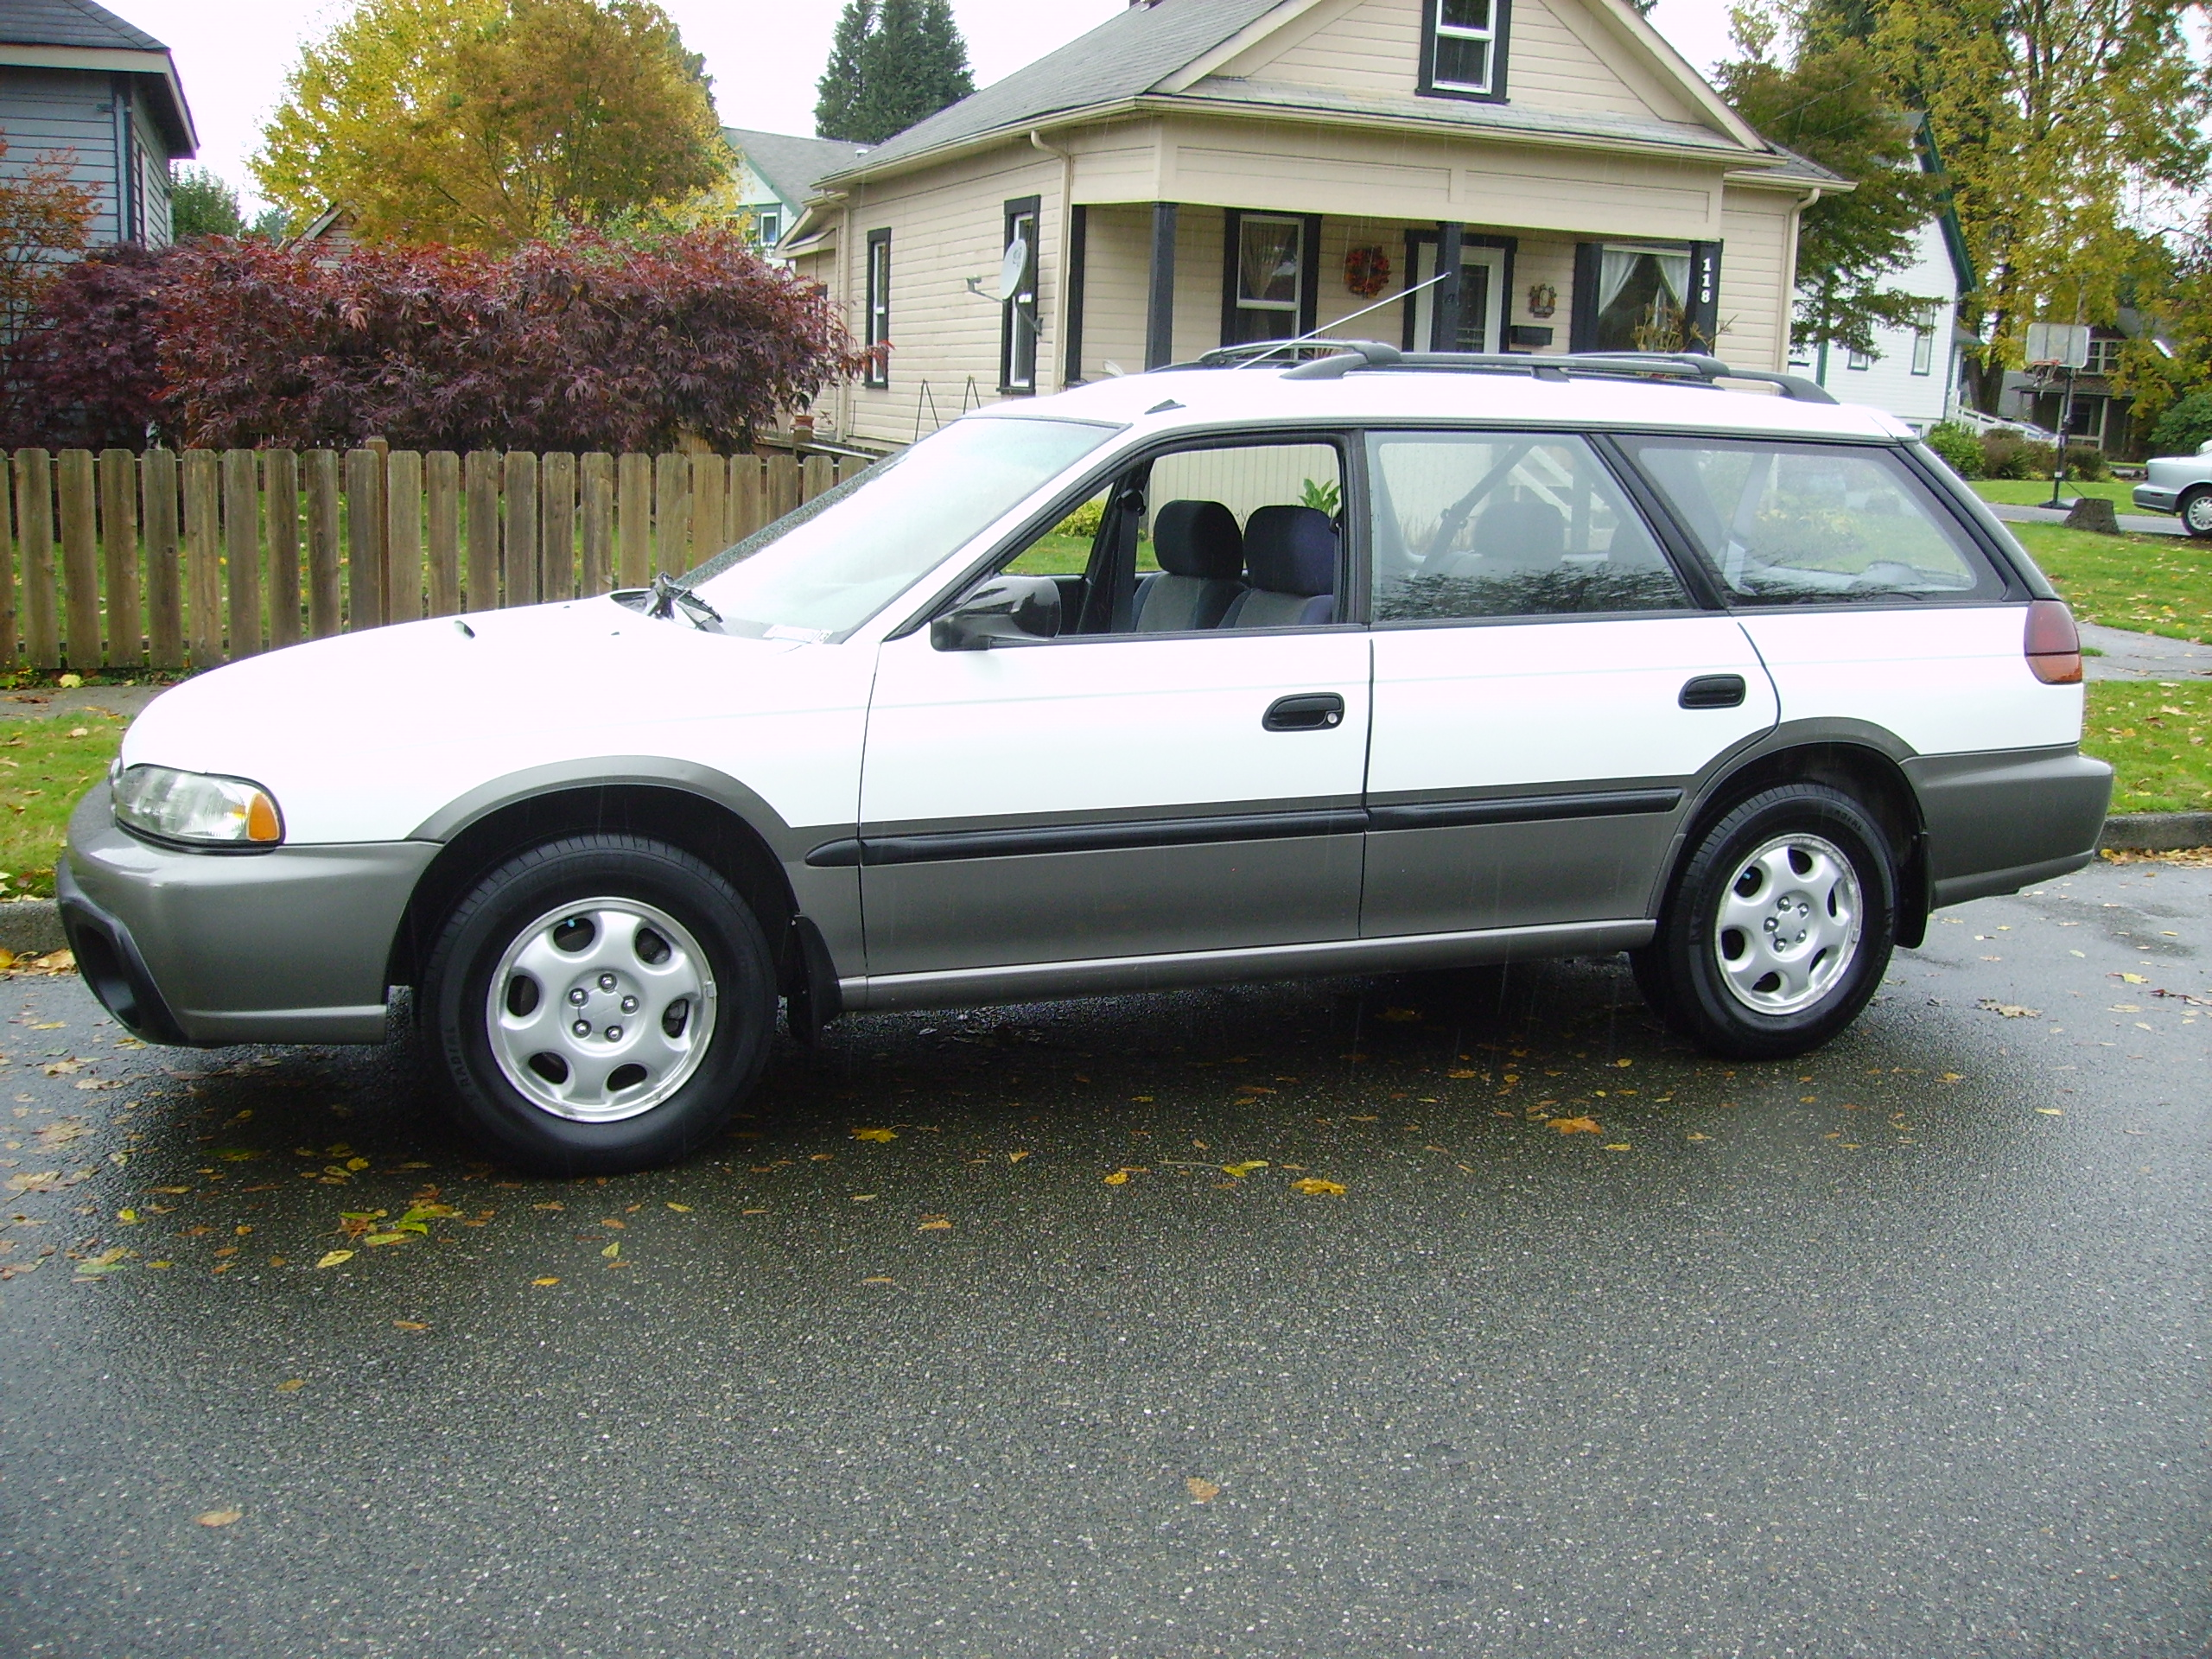 Subaru Outback 1997 Review Amazing Pictures And Images Look At The Car